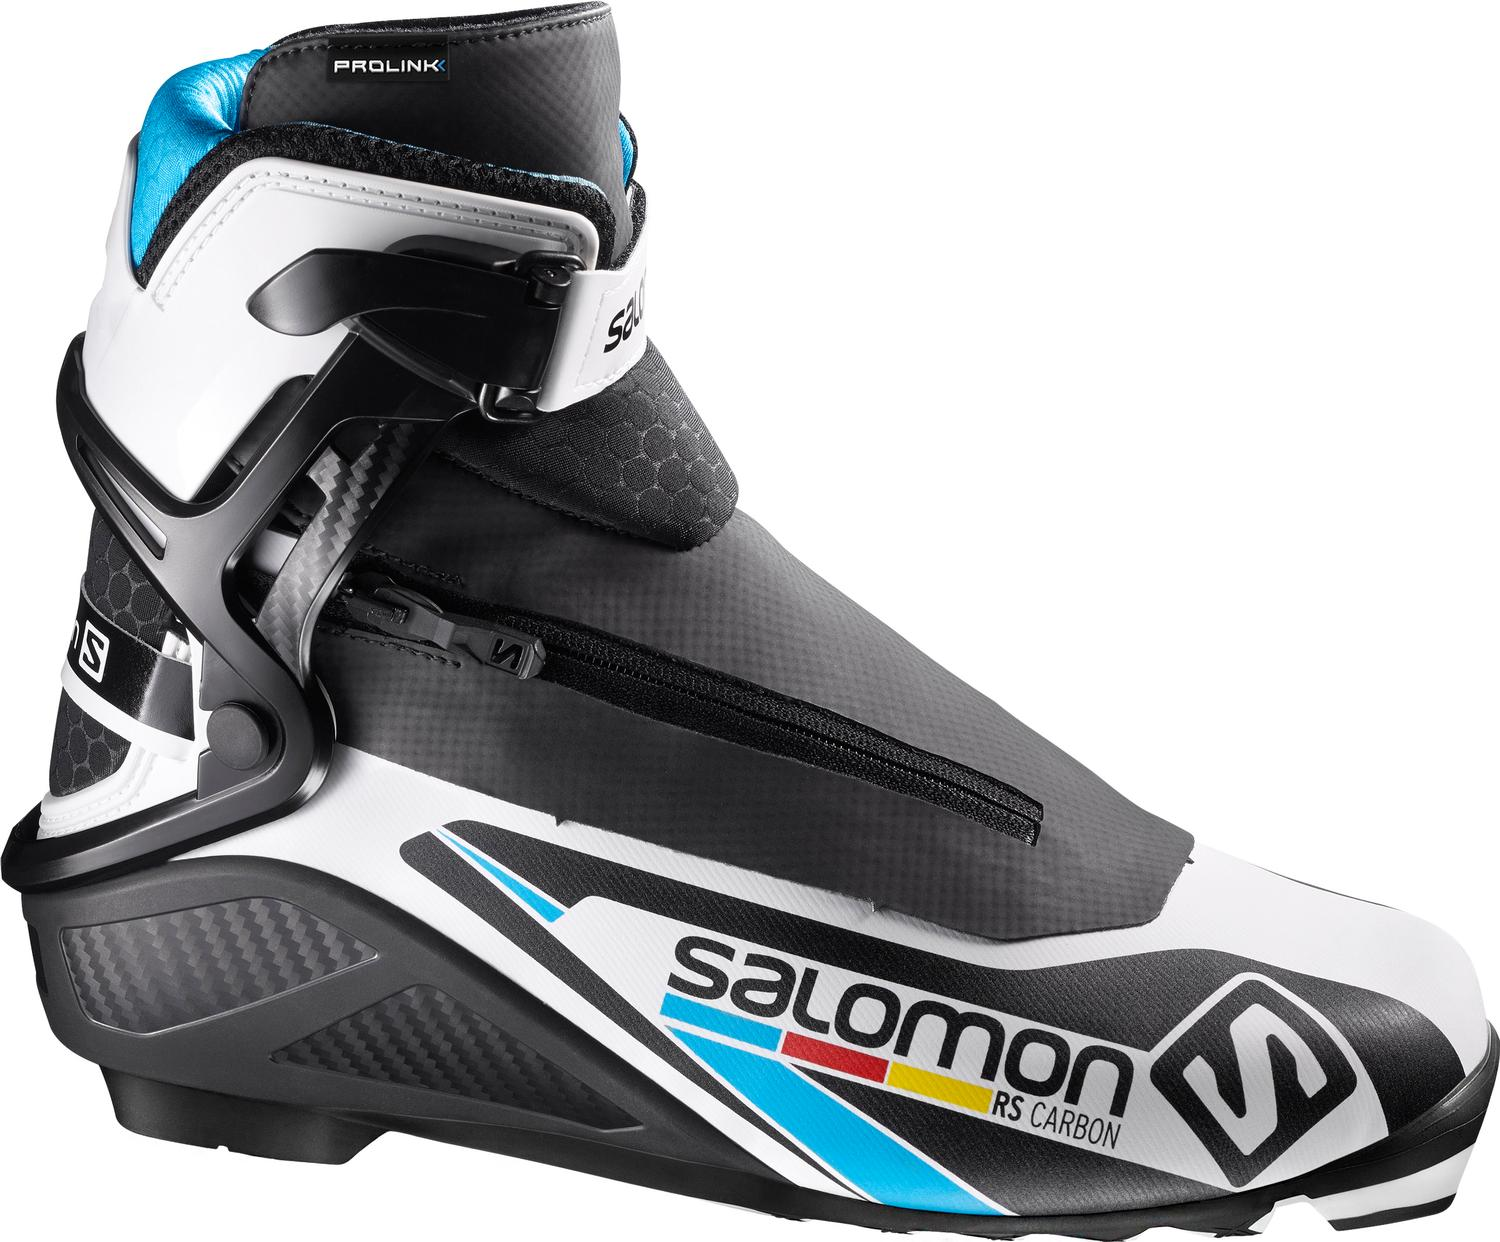 Salomon Women's RS Carbon Prolink Cross Country Ski Boots